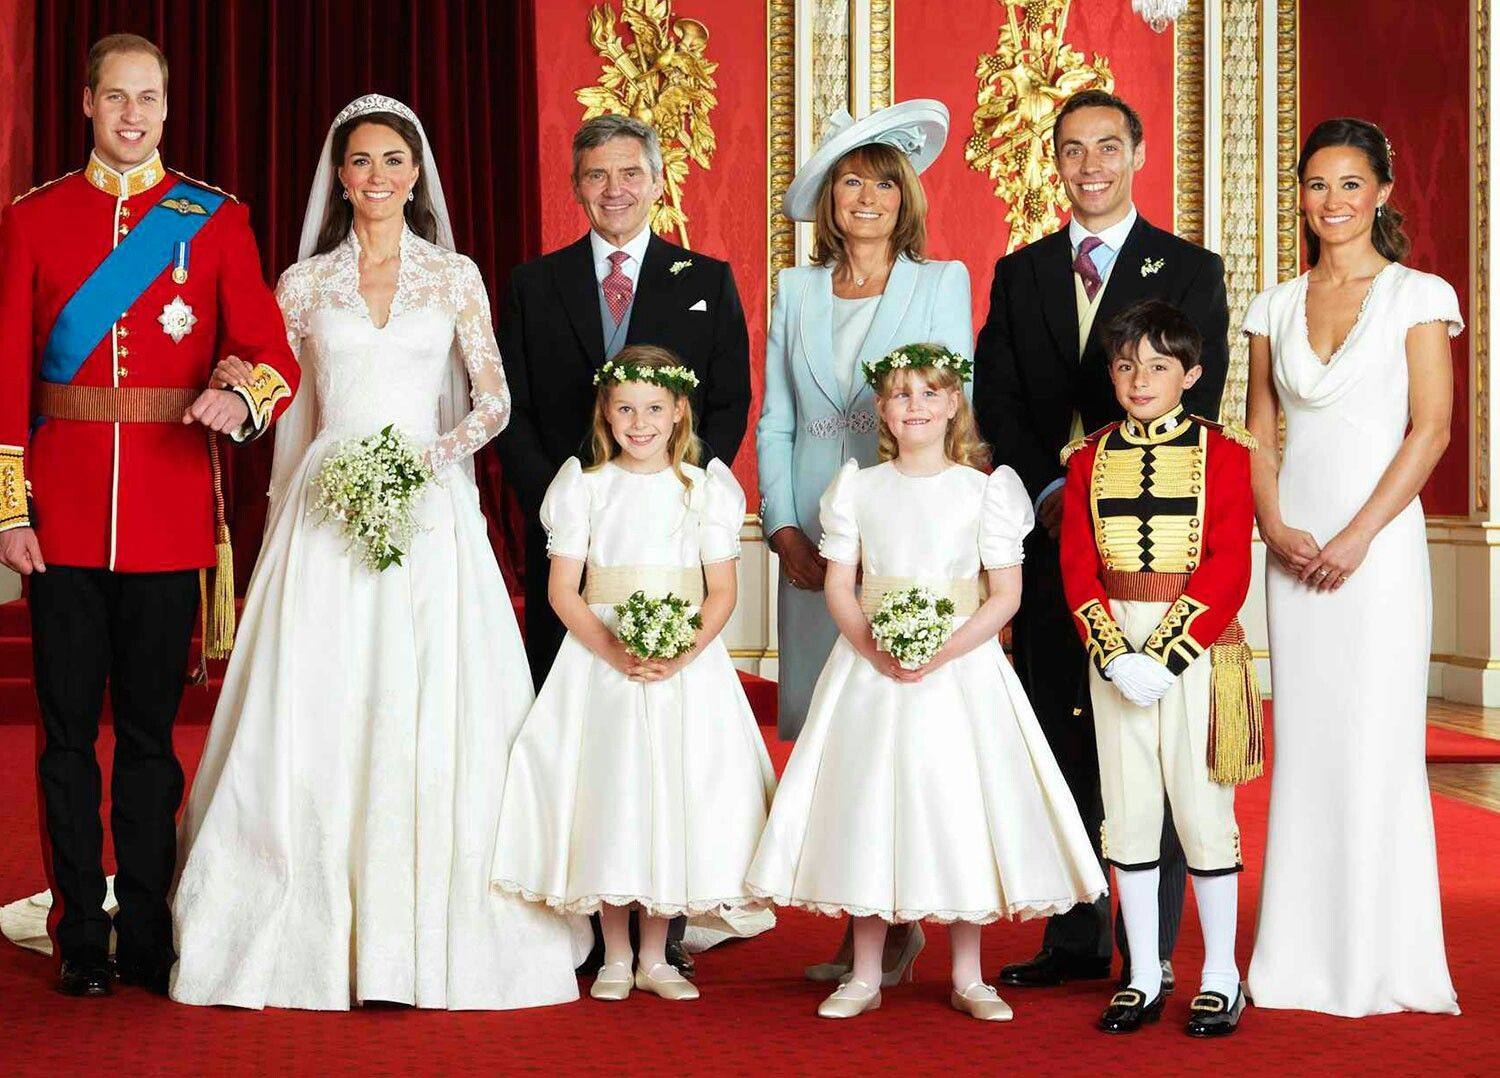 Kate Middleton and Prince William pose with the Middletons on their wedding day